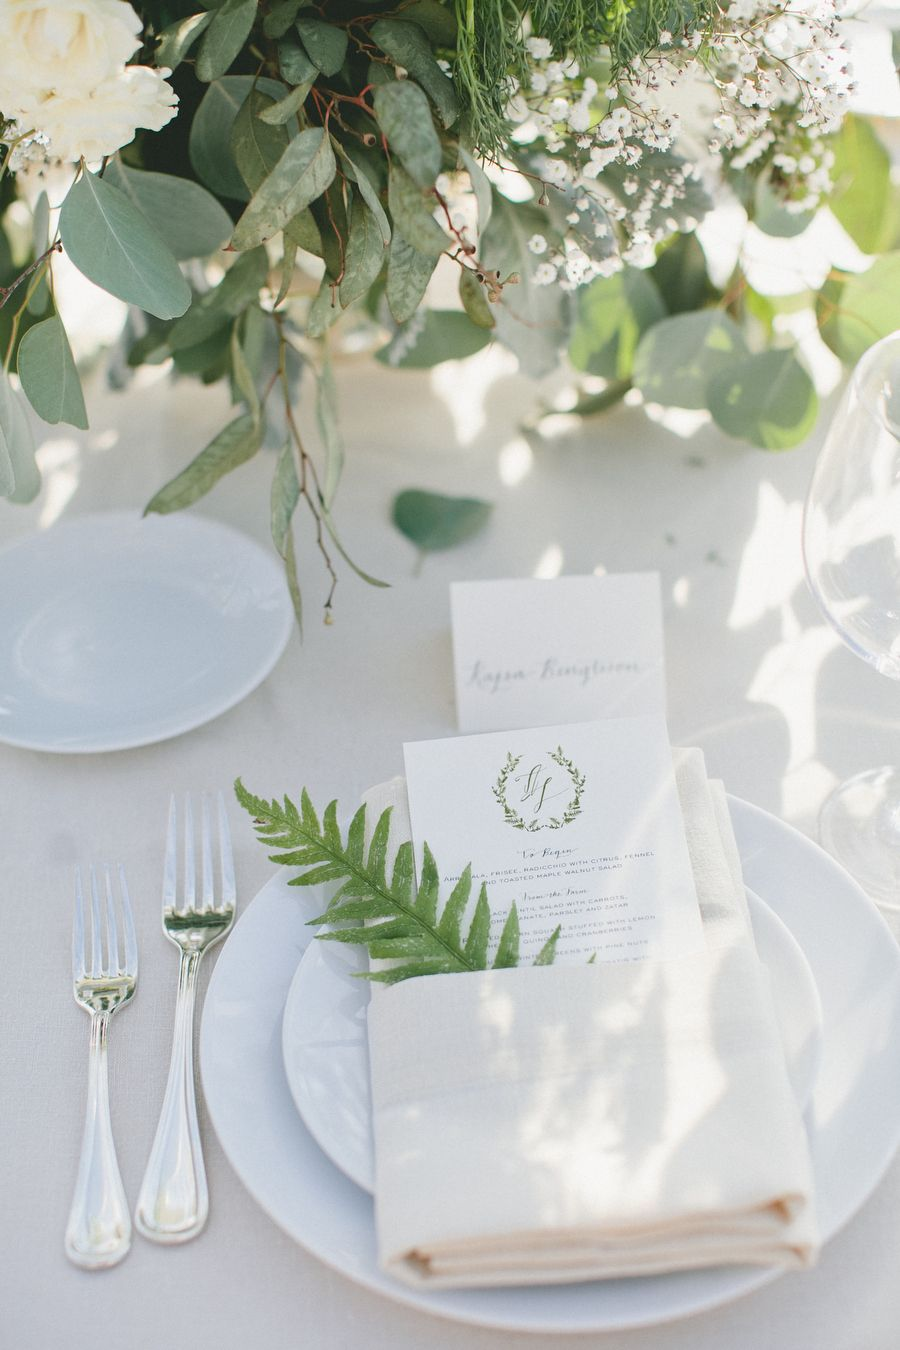 Rustic Bonny Doon Wedding with Scandinavian Traditions